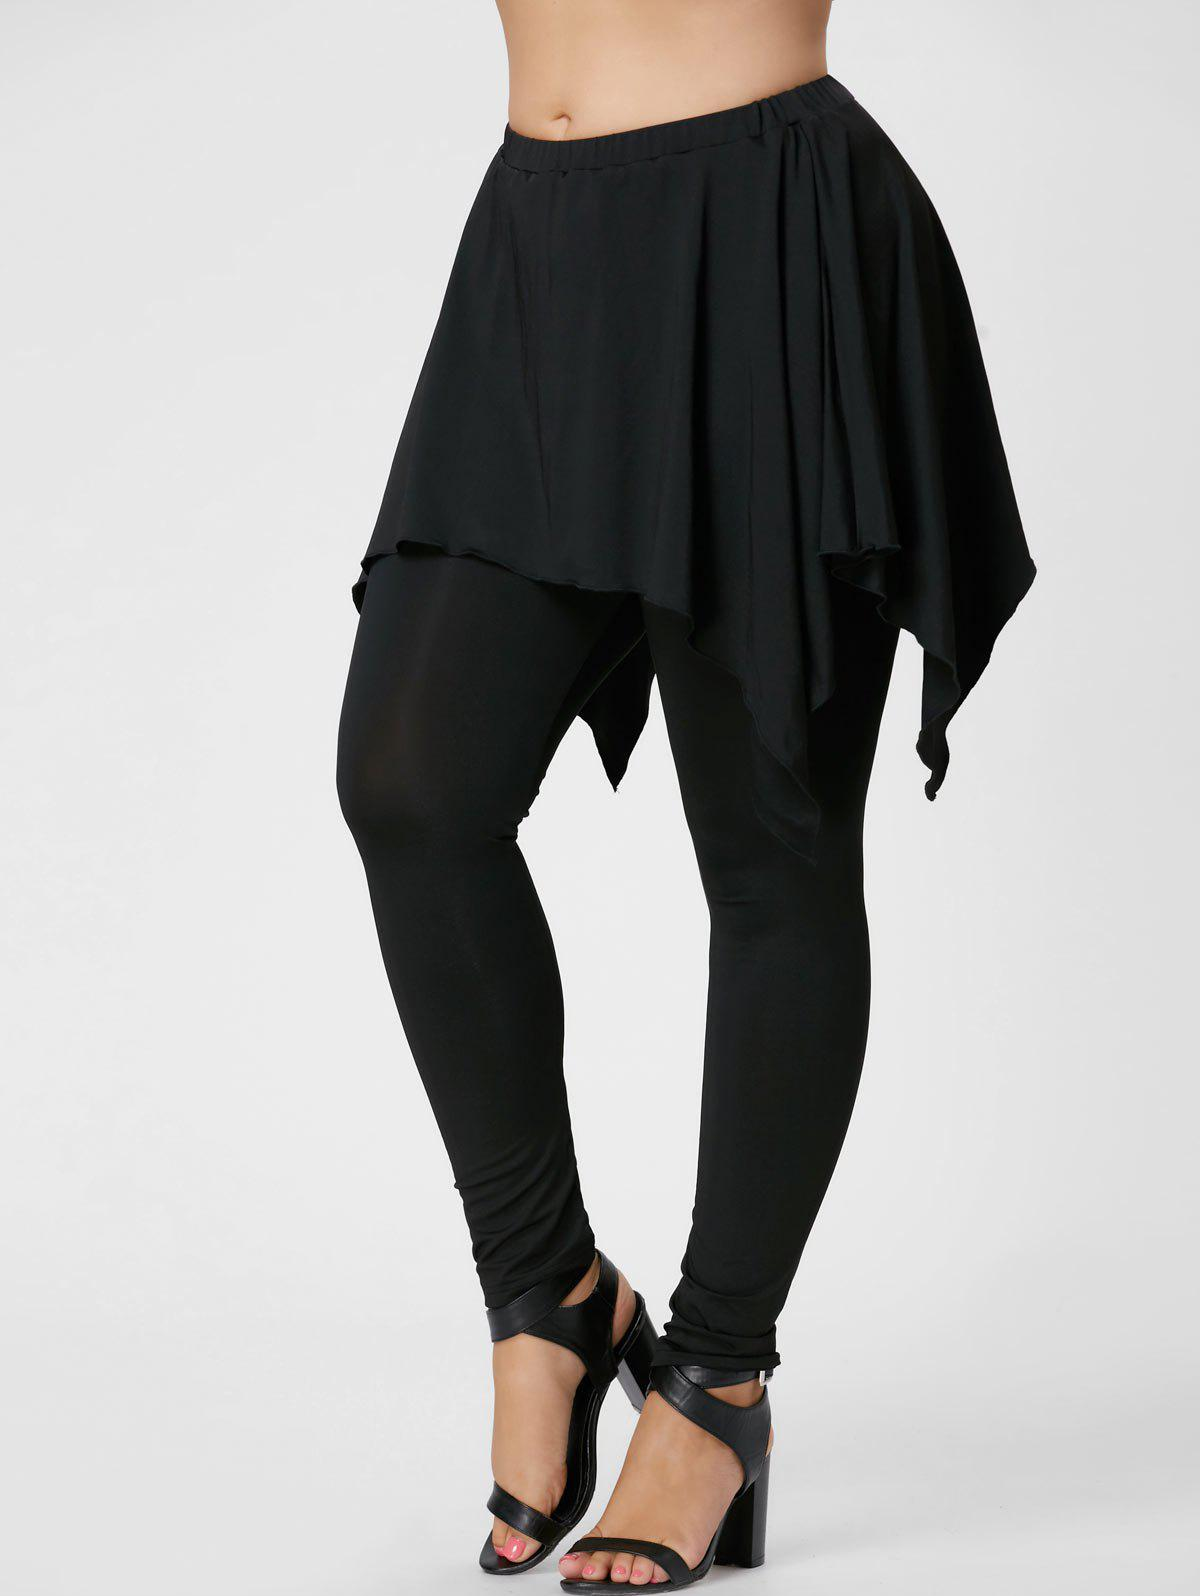 Plus Size Handerchief Skirt LenggingsWOMEN<br><br>Size: XL; Color: BLACK; Style: Active; Length: Normal; Material: Polyester,Spandex; Fit Type: Skinny; Waist Type: Mid; Closure Type: Elastic Waist; Pattern Type: Solid; Pant Style: Pencil Pants; Weight: 0.3600kg; Package Contents: 1 x Pants;